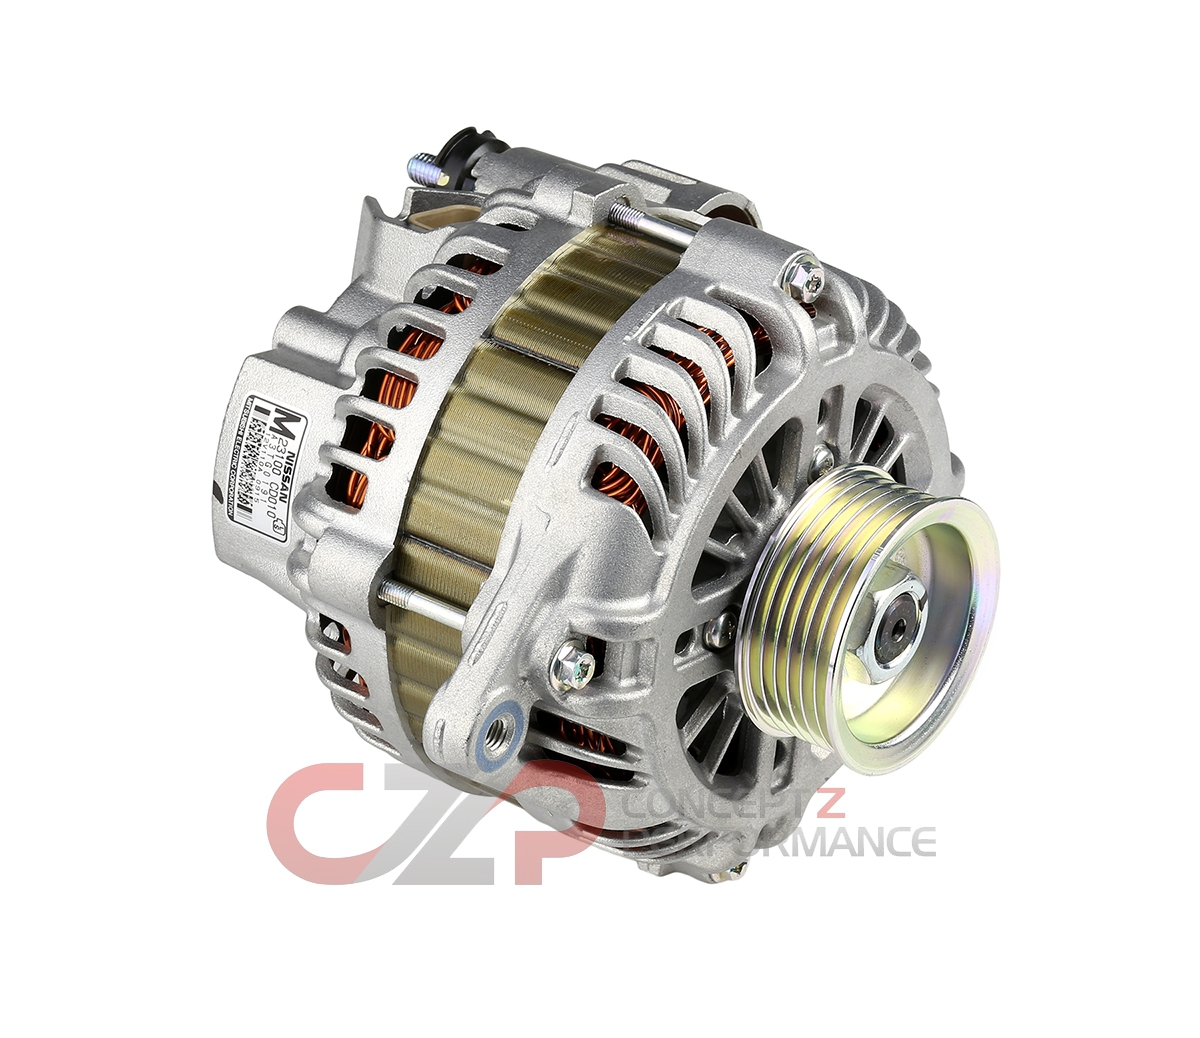 WPS High Output 220 Amp Alternator Assembly, VQ35HR VQ37VHR - Nissan 350Z 370Z / Infiniti G35 G37 Q40 Q50 Q60 Q70 M35 M37 FX35